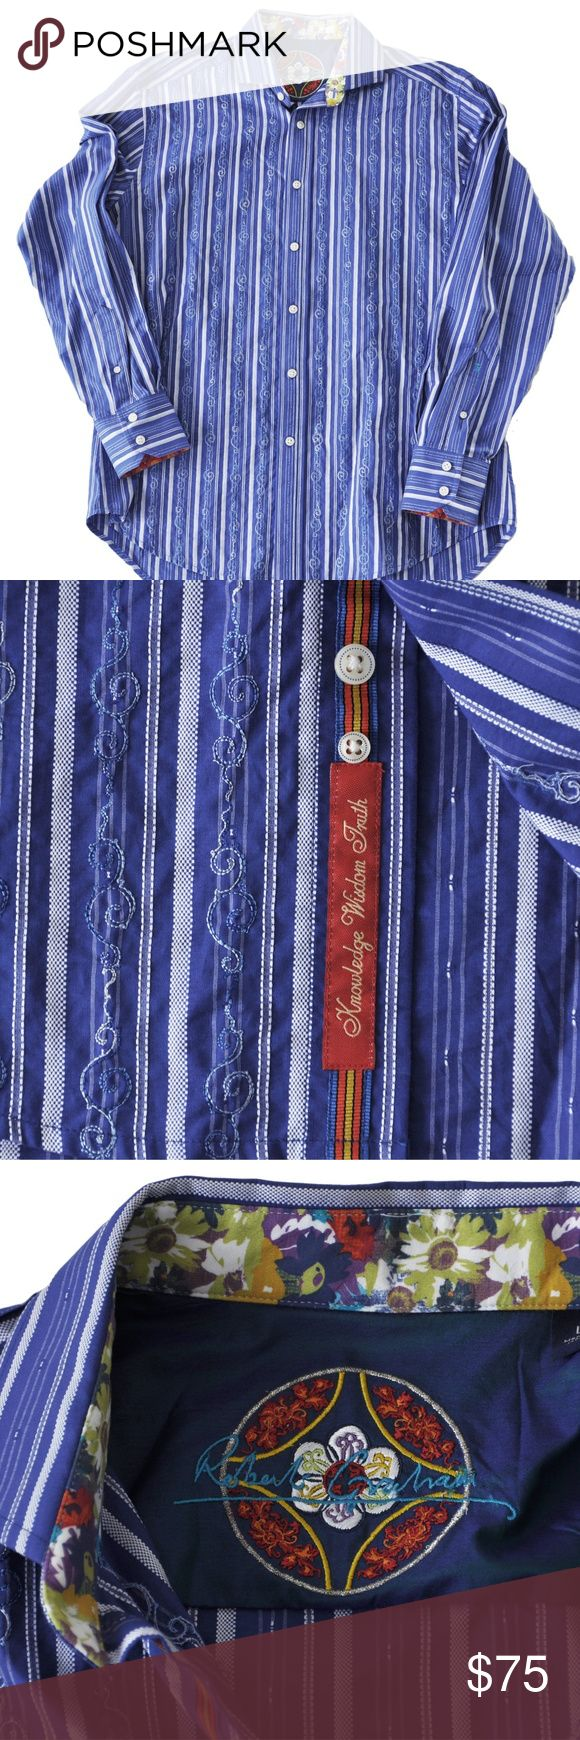 """Robert Graham Large Stripes Embroidered Contrast ROBERT GRAHAM  Blue and white stripes with embroidered design Contrasting red, yellow, and blue cuffs and underside of collar Robert Graham's Signature """"Knowledge, Wisdom, Truth"""" is embroidered below buttons 100% Cotton Body; 100% Silk Trim Dry Clean Approximate measurements taken flat across Shoulder to Shoulder: 20"""" Underarm to Underarm: 24.5"""" Sleeve Length: 25.5"""" (from shoulder hem to end of cuff) Length: 34"""" (Measured on back side, from…"""